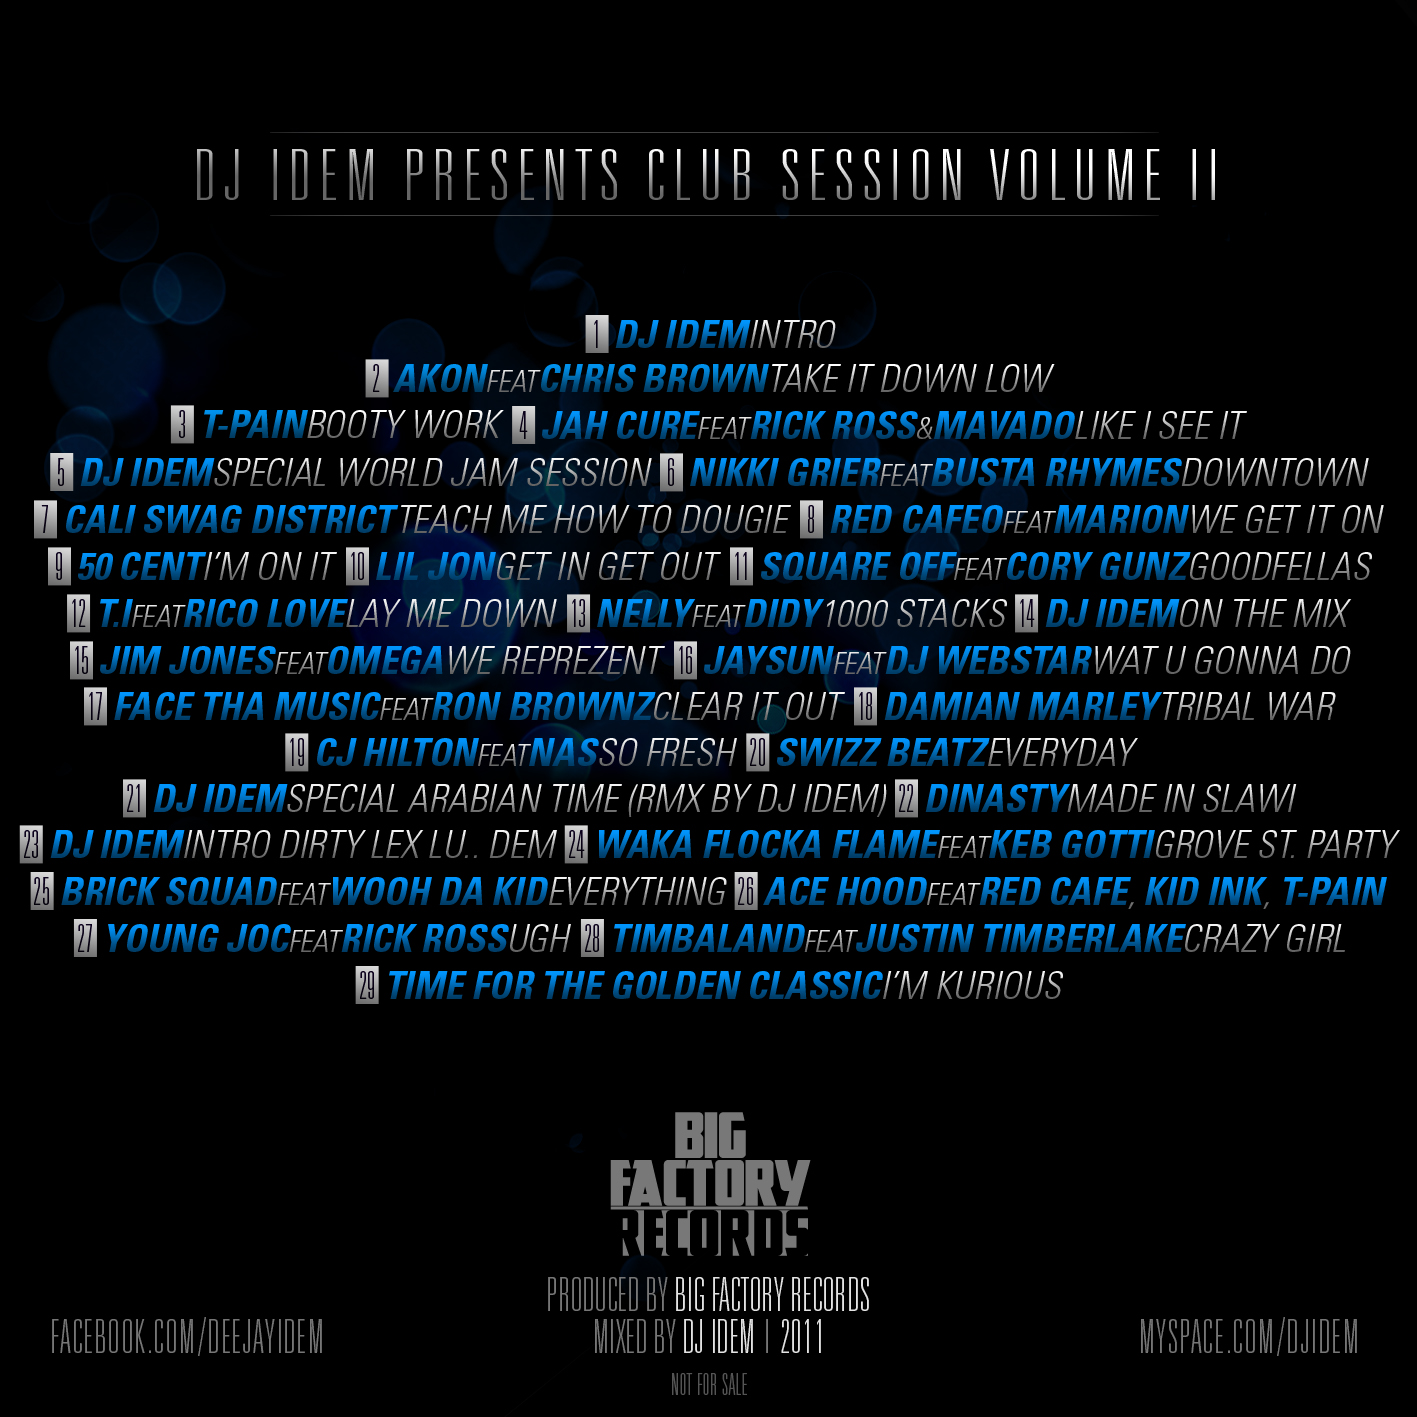 clubsession_II_dos